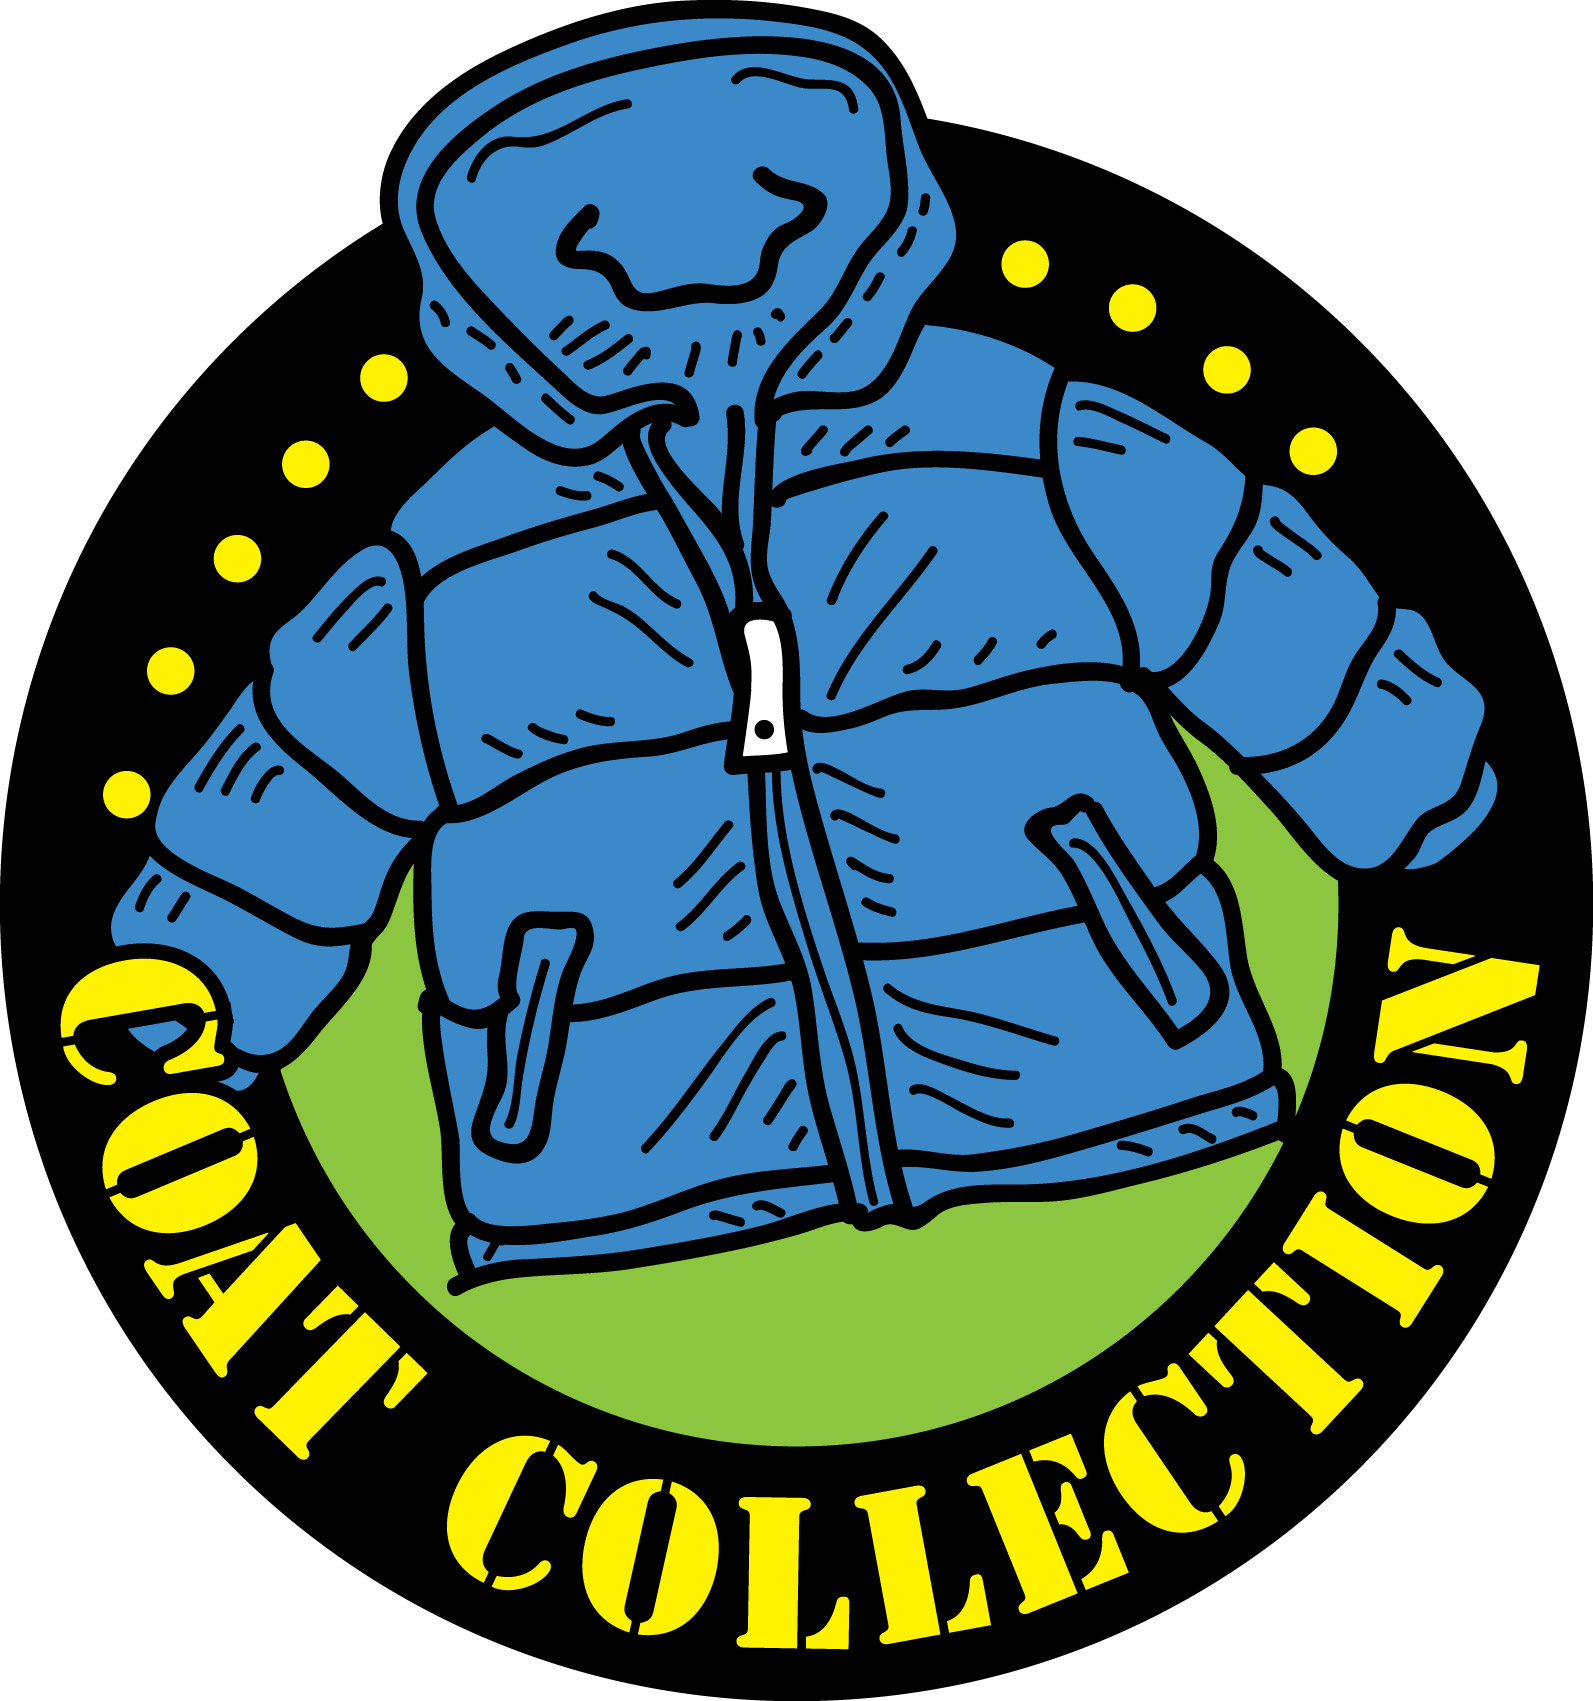 Free Pictures Of Coats, Download Free Clip Art, Free Clip.